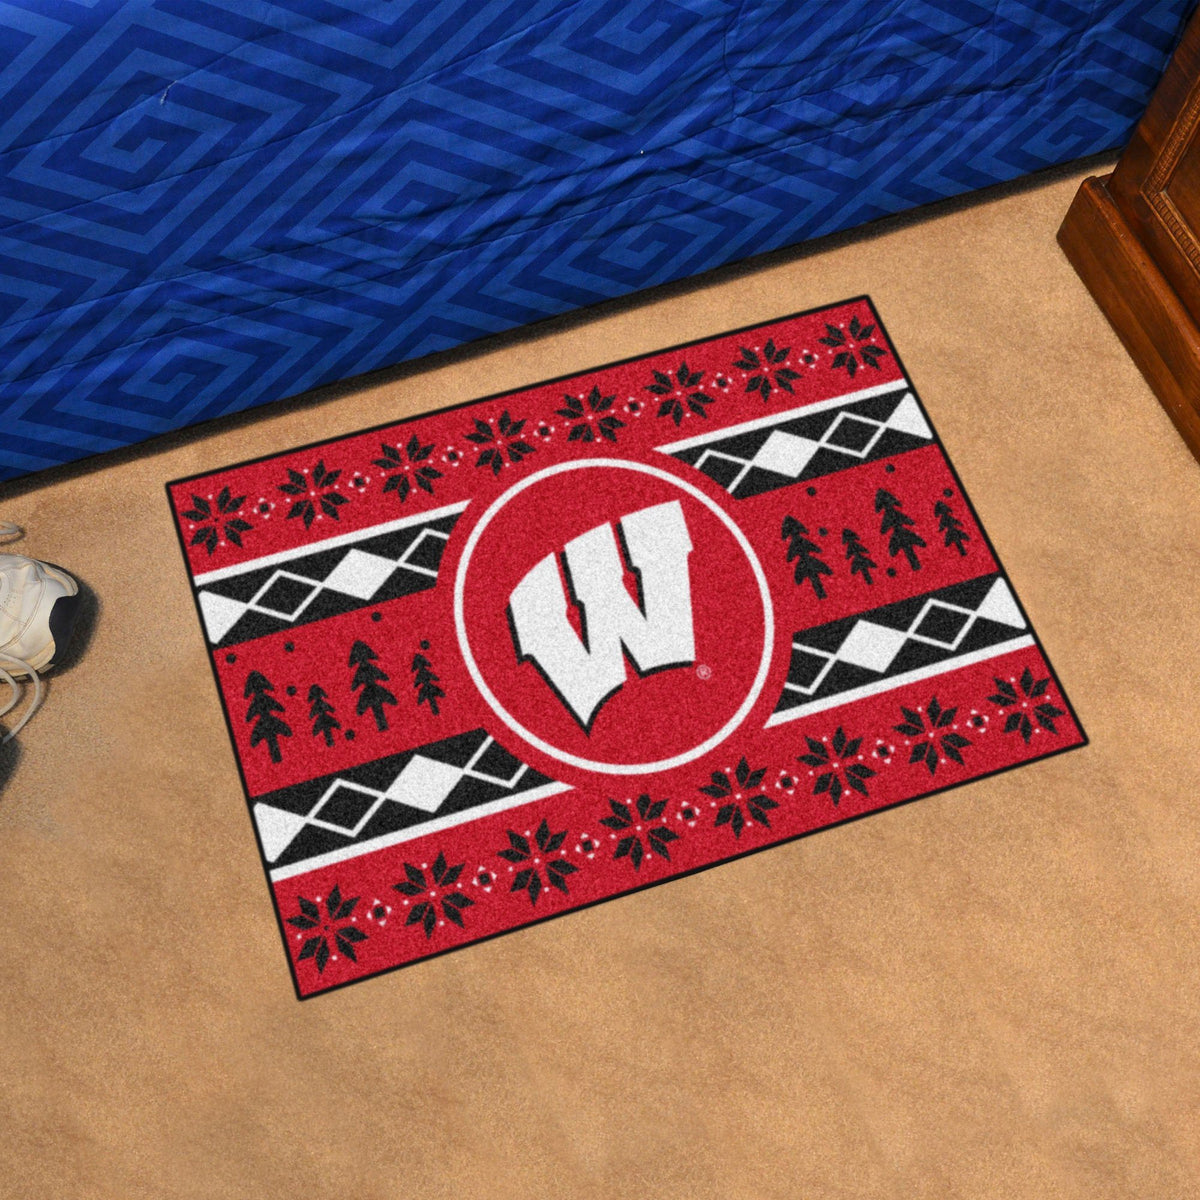 Collegiate - Holiday Sweater Starter Mat Collegiate Mats, Rectangular Mats, Holiday Sweater Starter Mat, Collegiate, Home Fan Mats Wisconsin